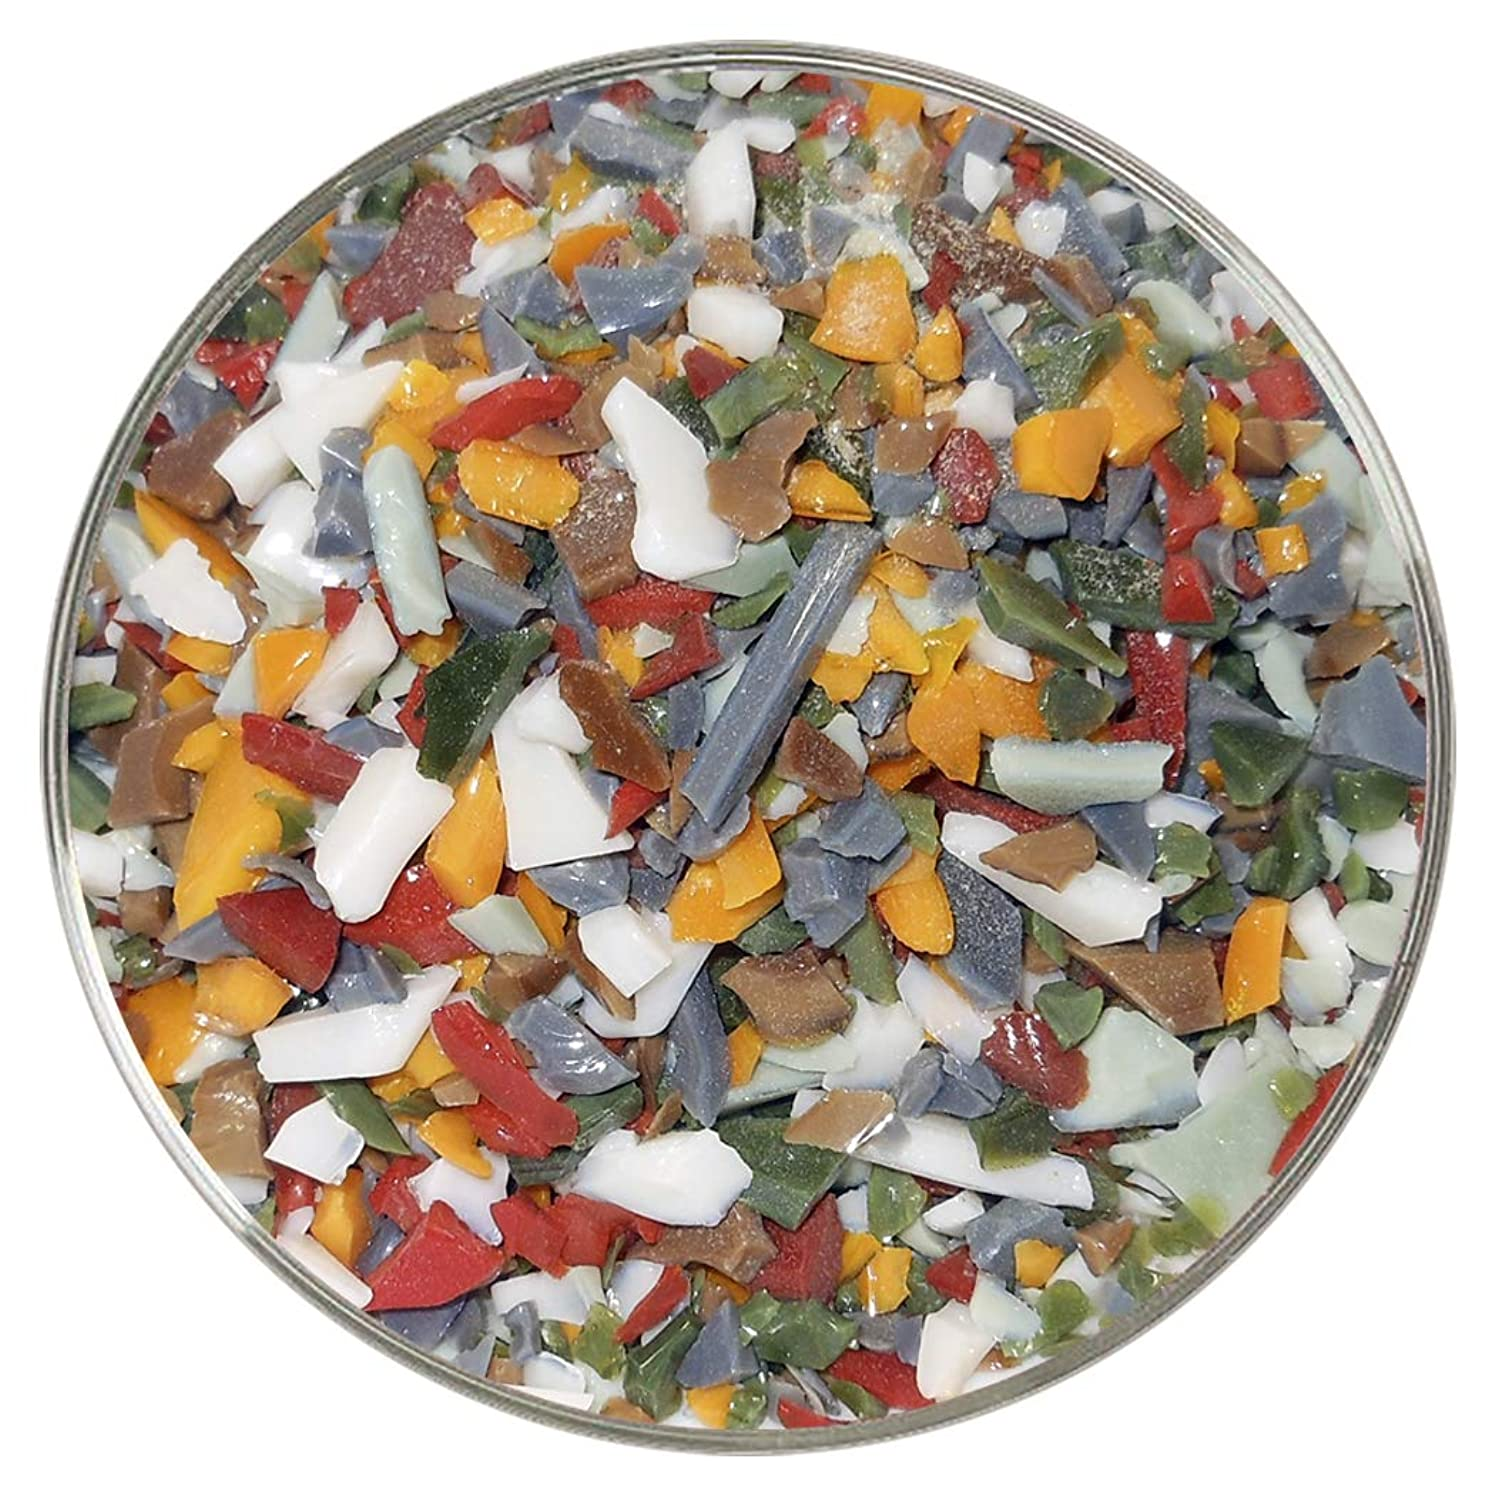 Apple Orchard Designer Collection Coarse Frit Mix - 4oz - 96COE - Made from System 96 Glass by New Hampshire Craftworks